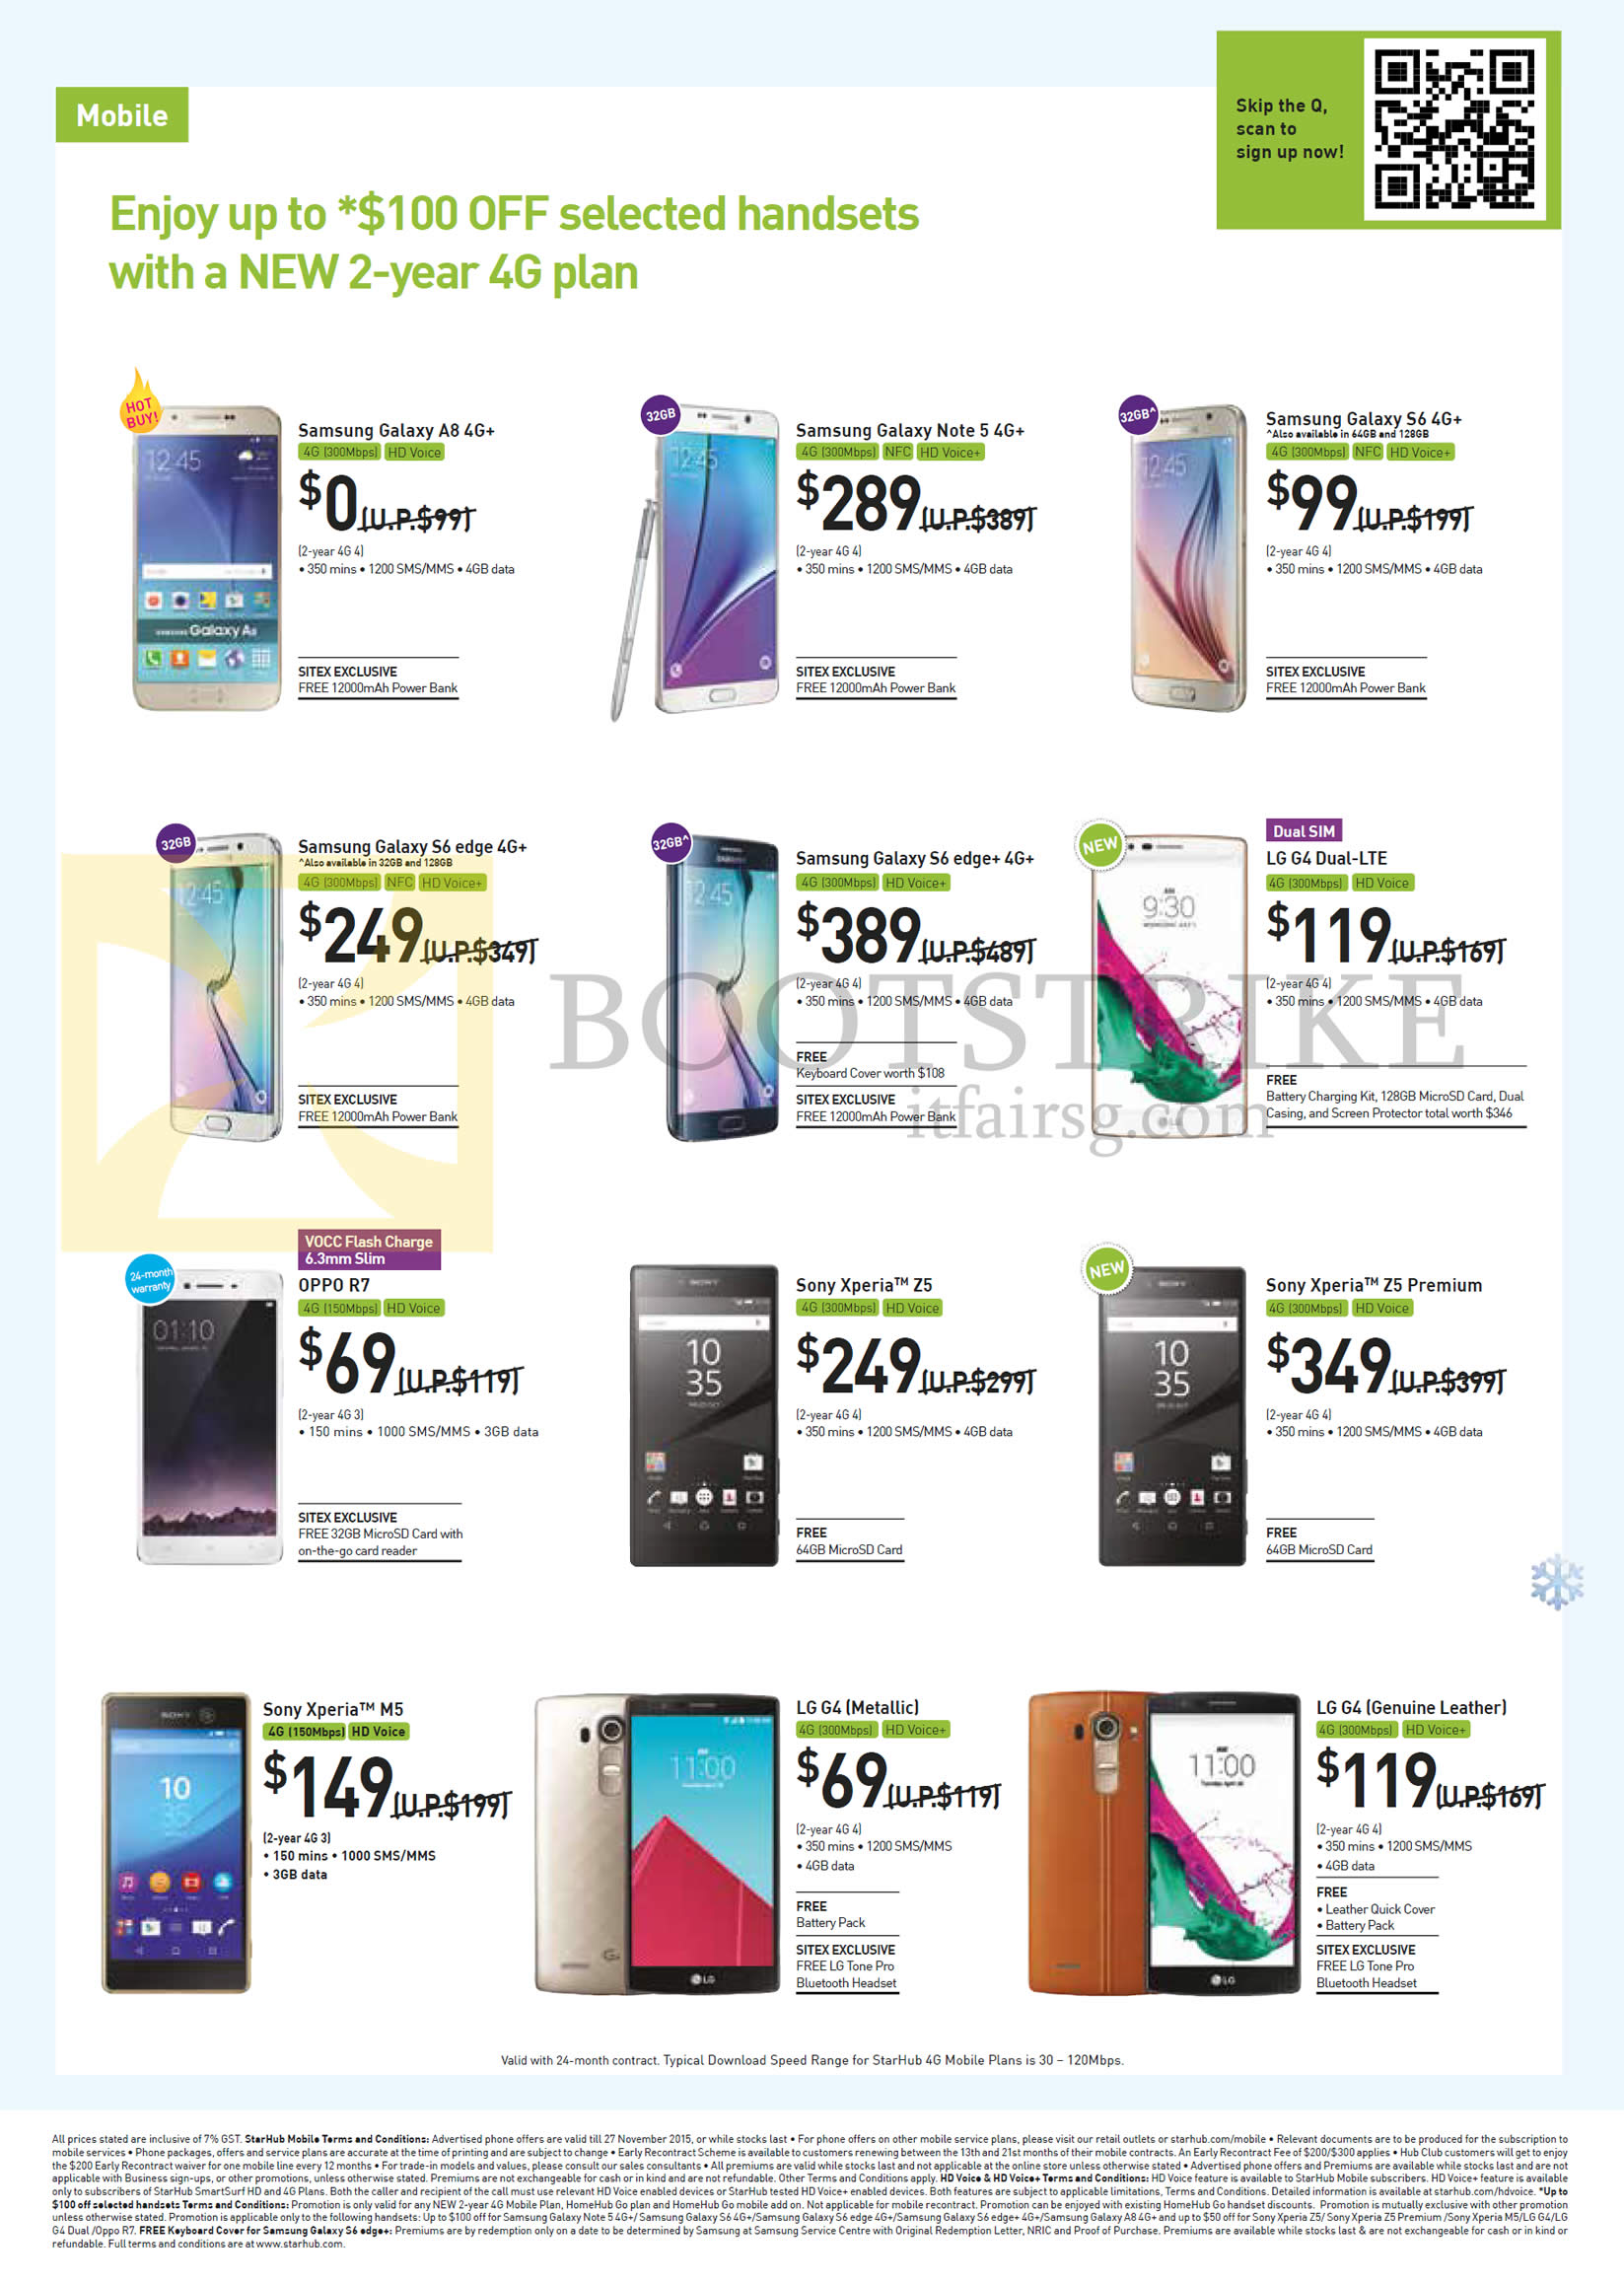 SITEX 2015 price list image brochure of Starhub Mobile Samsung Galaxy A8, Note 5, S6, S6 Edge, S6 Edge Plus, LG G4 Dual, G4 Metallic, Genuine Leather, Oppo R7, Sony Xperia Z5, Z5 Premium, M5